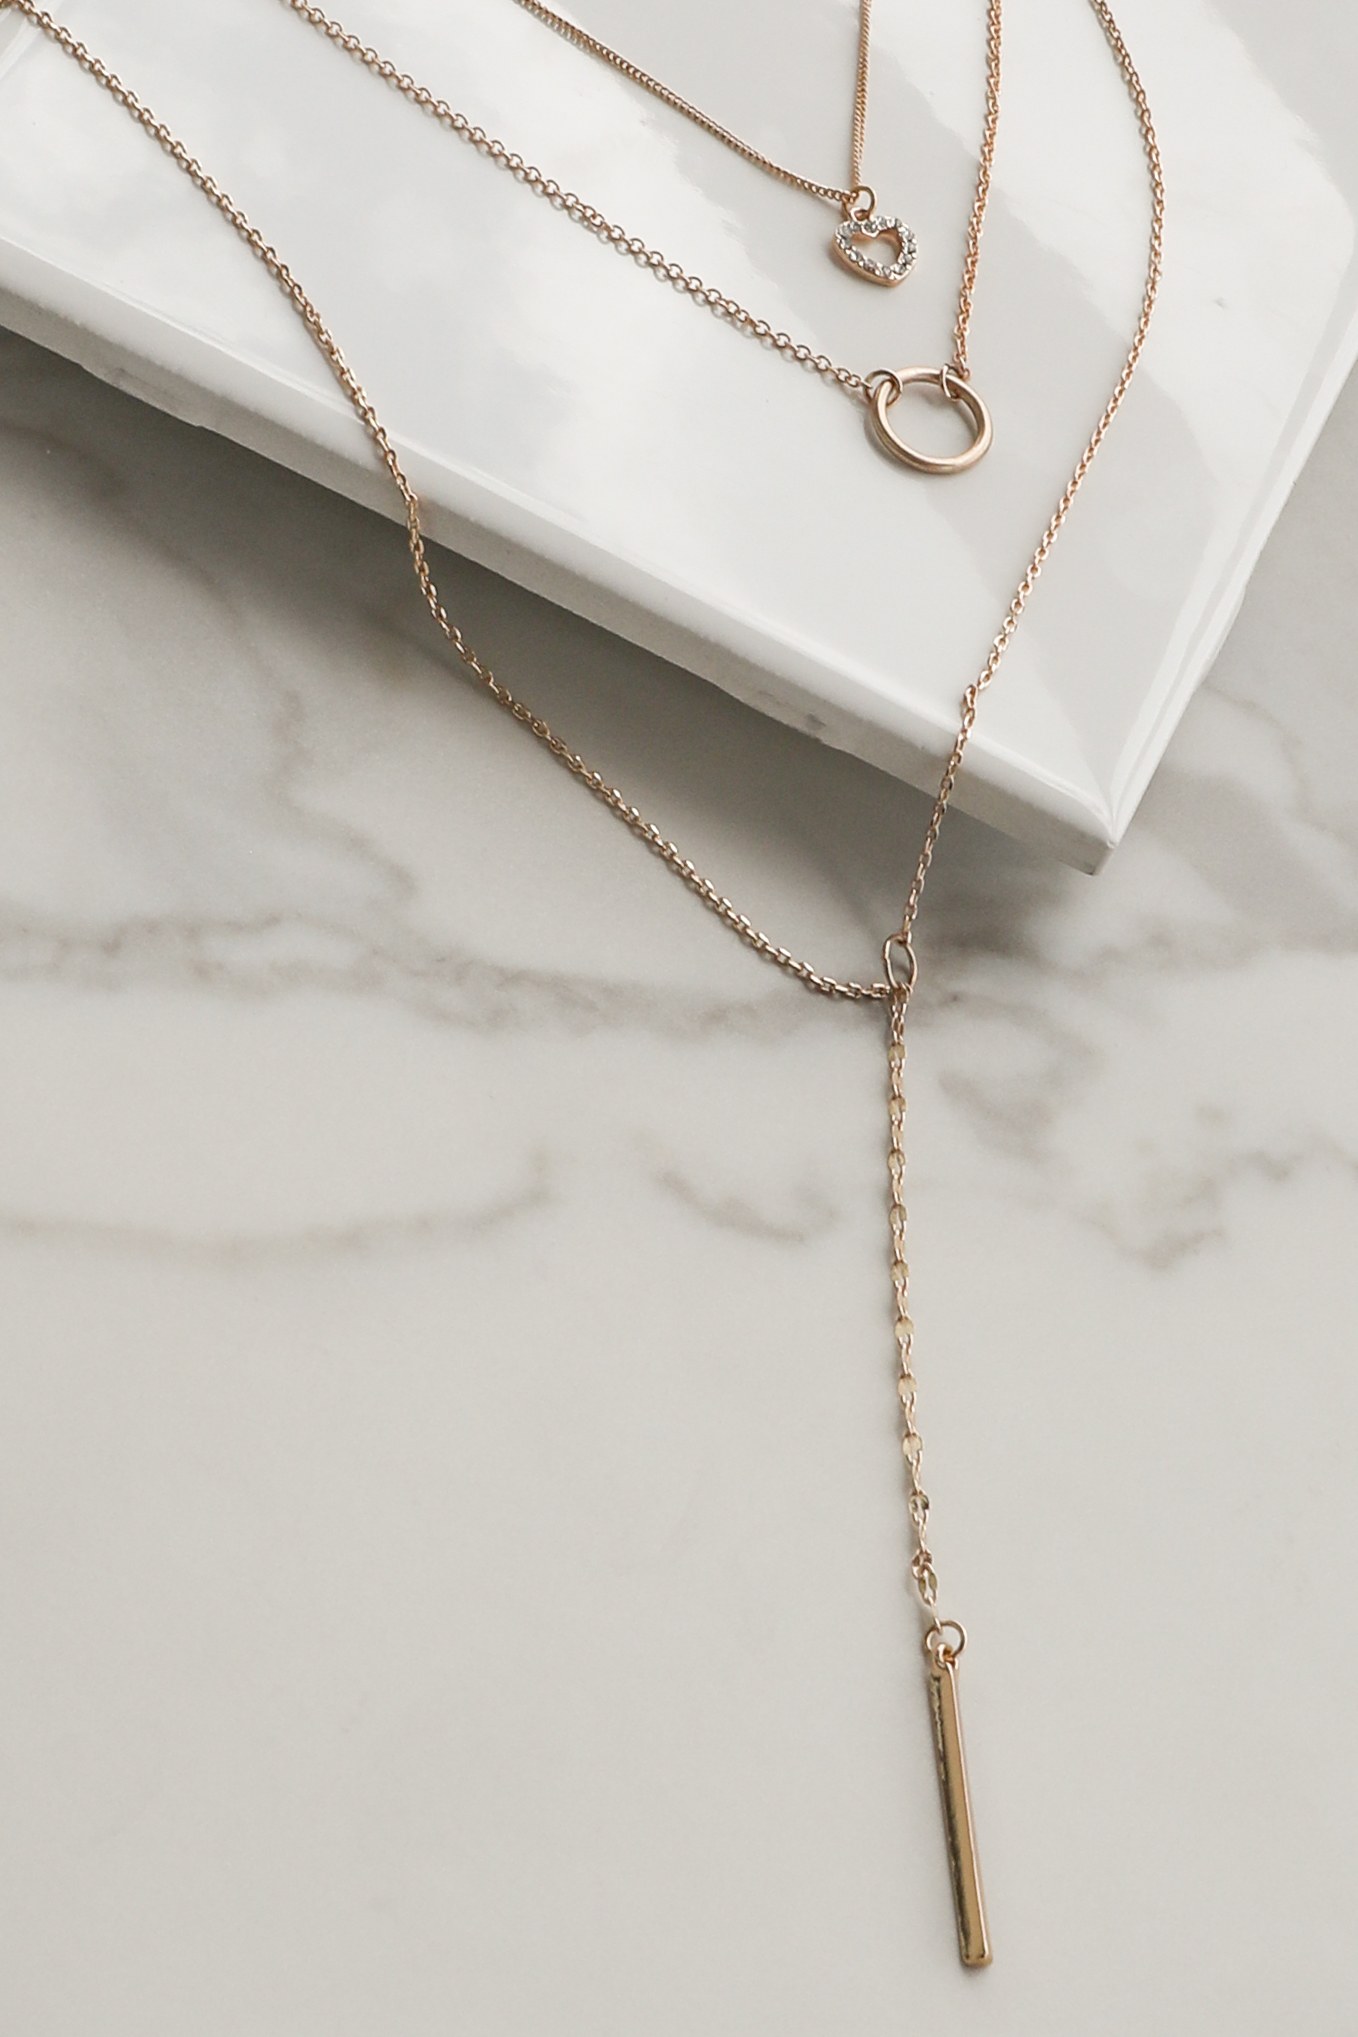 Gold Multi Layered Necklace with Pendant Details